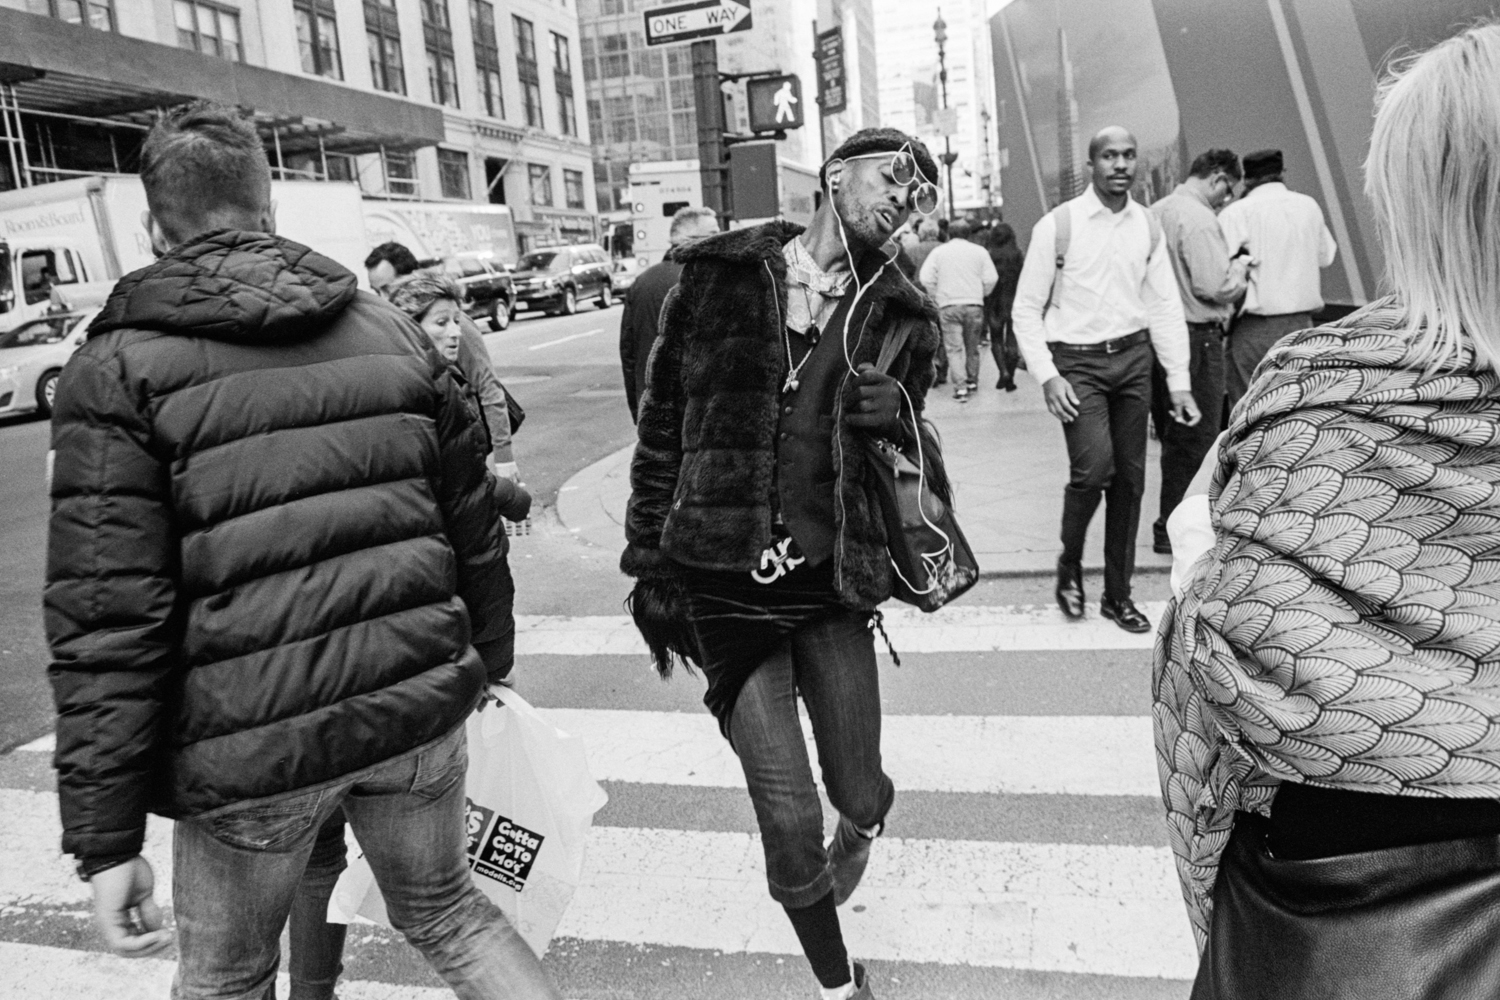 Photographs ofStyle, Culture,& Discovery - Andre D. Wagner, a photographer based in Brooklyn, roamed the streets of Manhattan this winter in search of stylish moments.Feburary 10, 2017